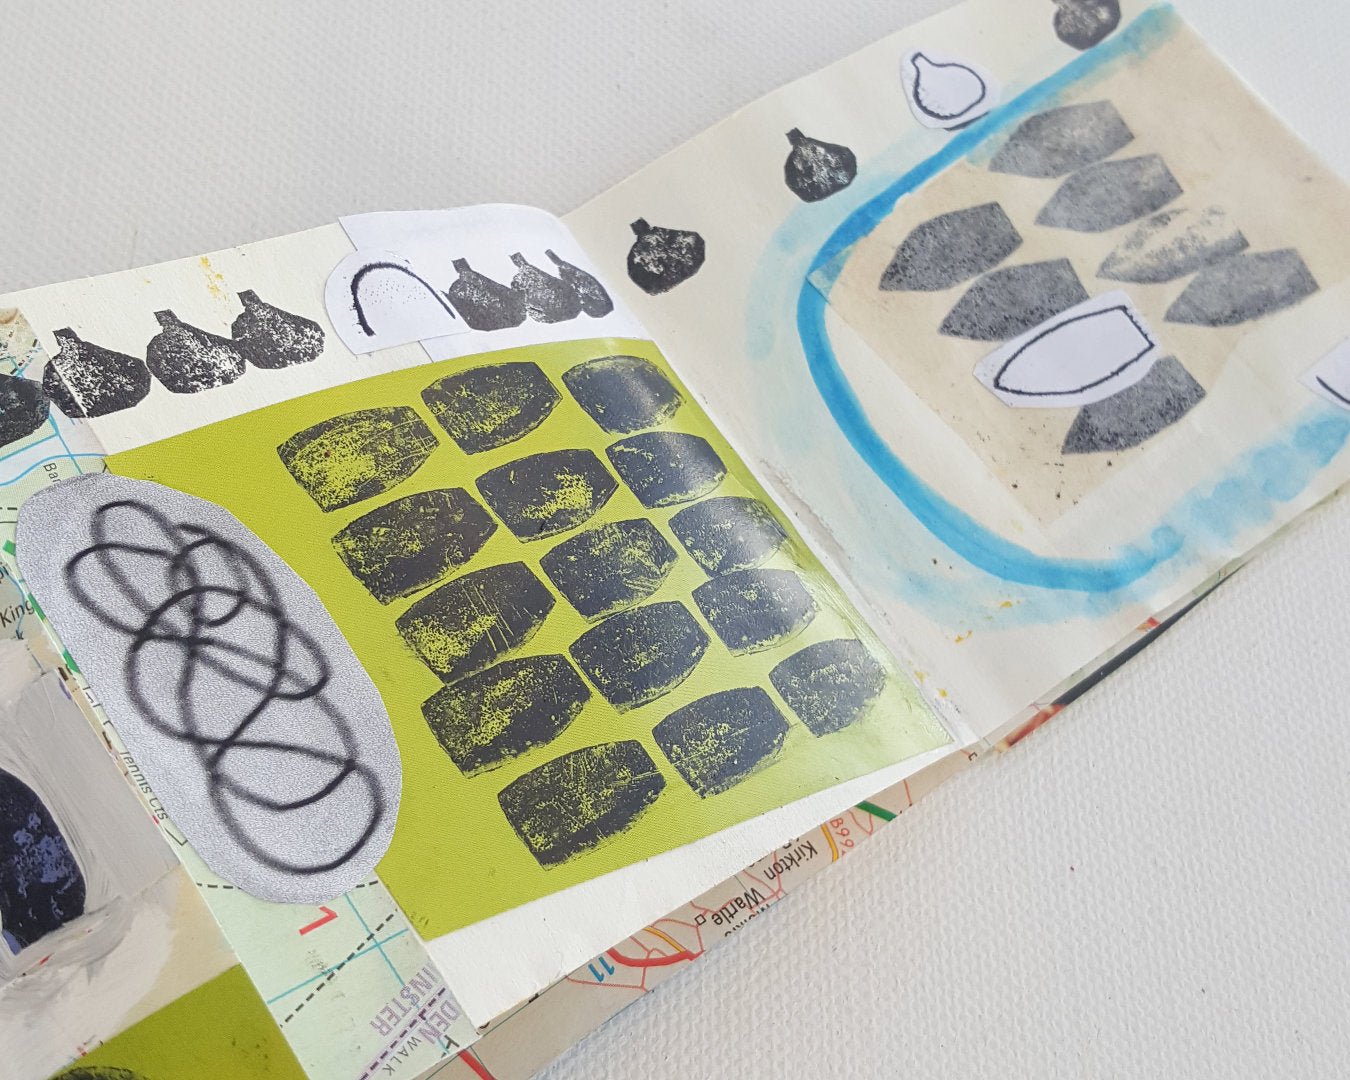 Handmade sketchbook open showing 2 pages of collage and hand stamps.